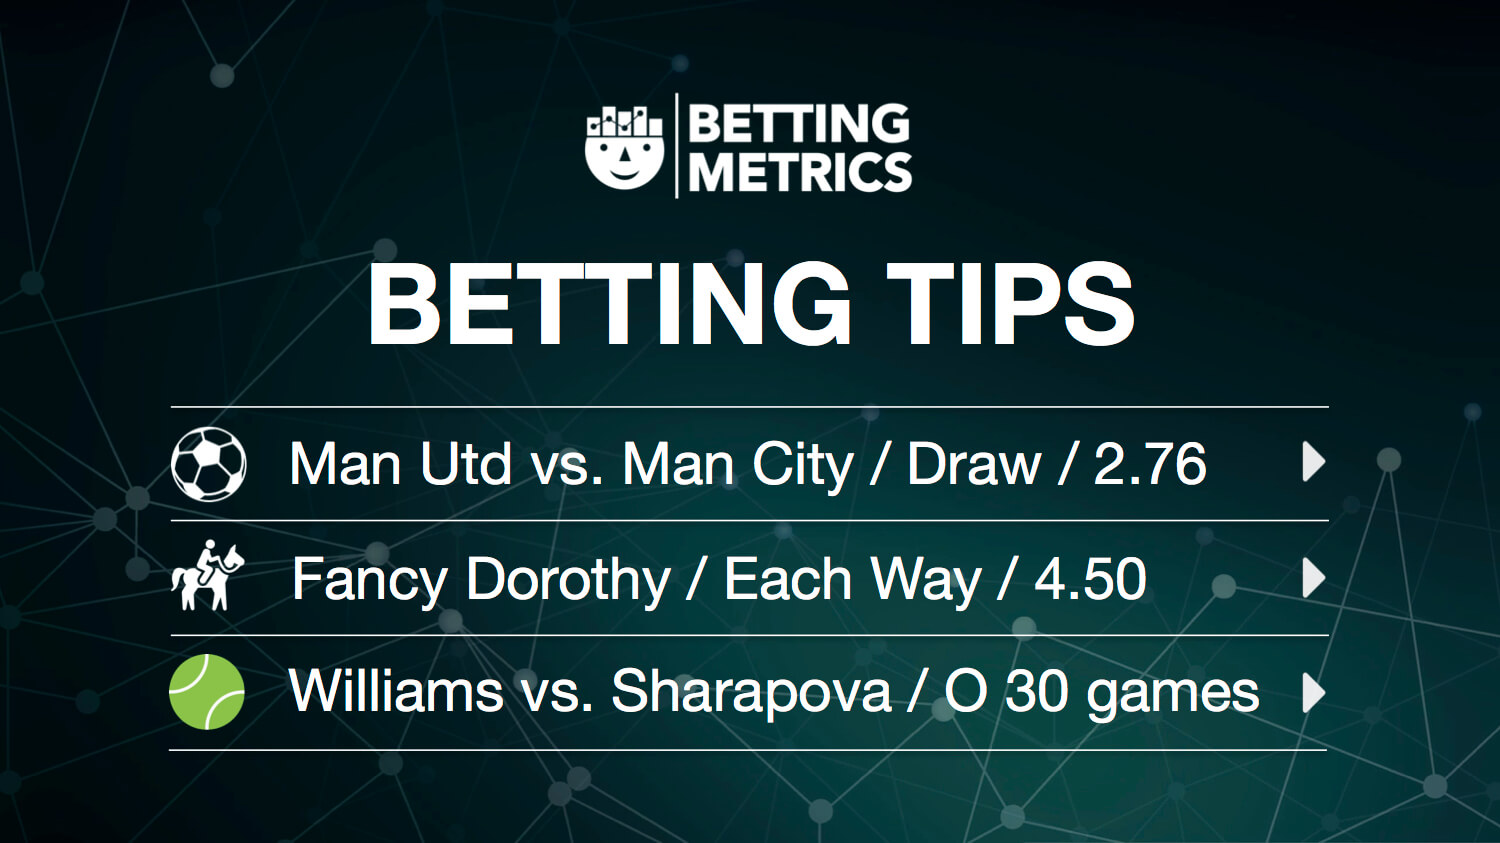 Betting tips 1